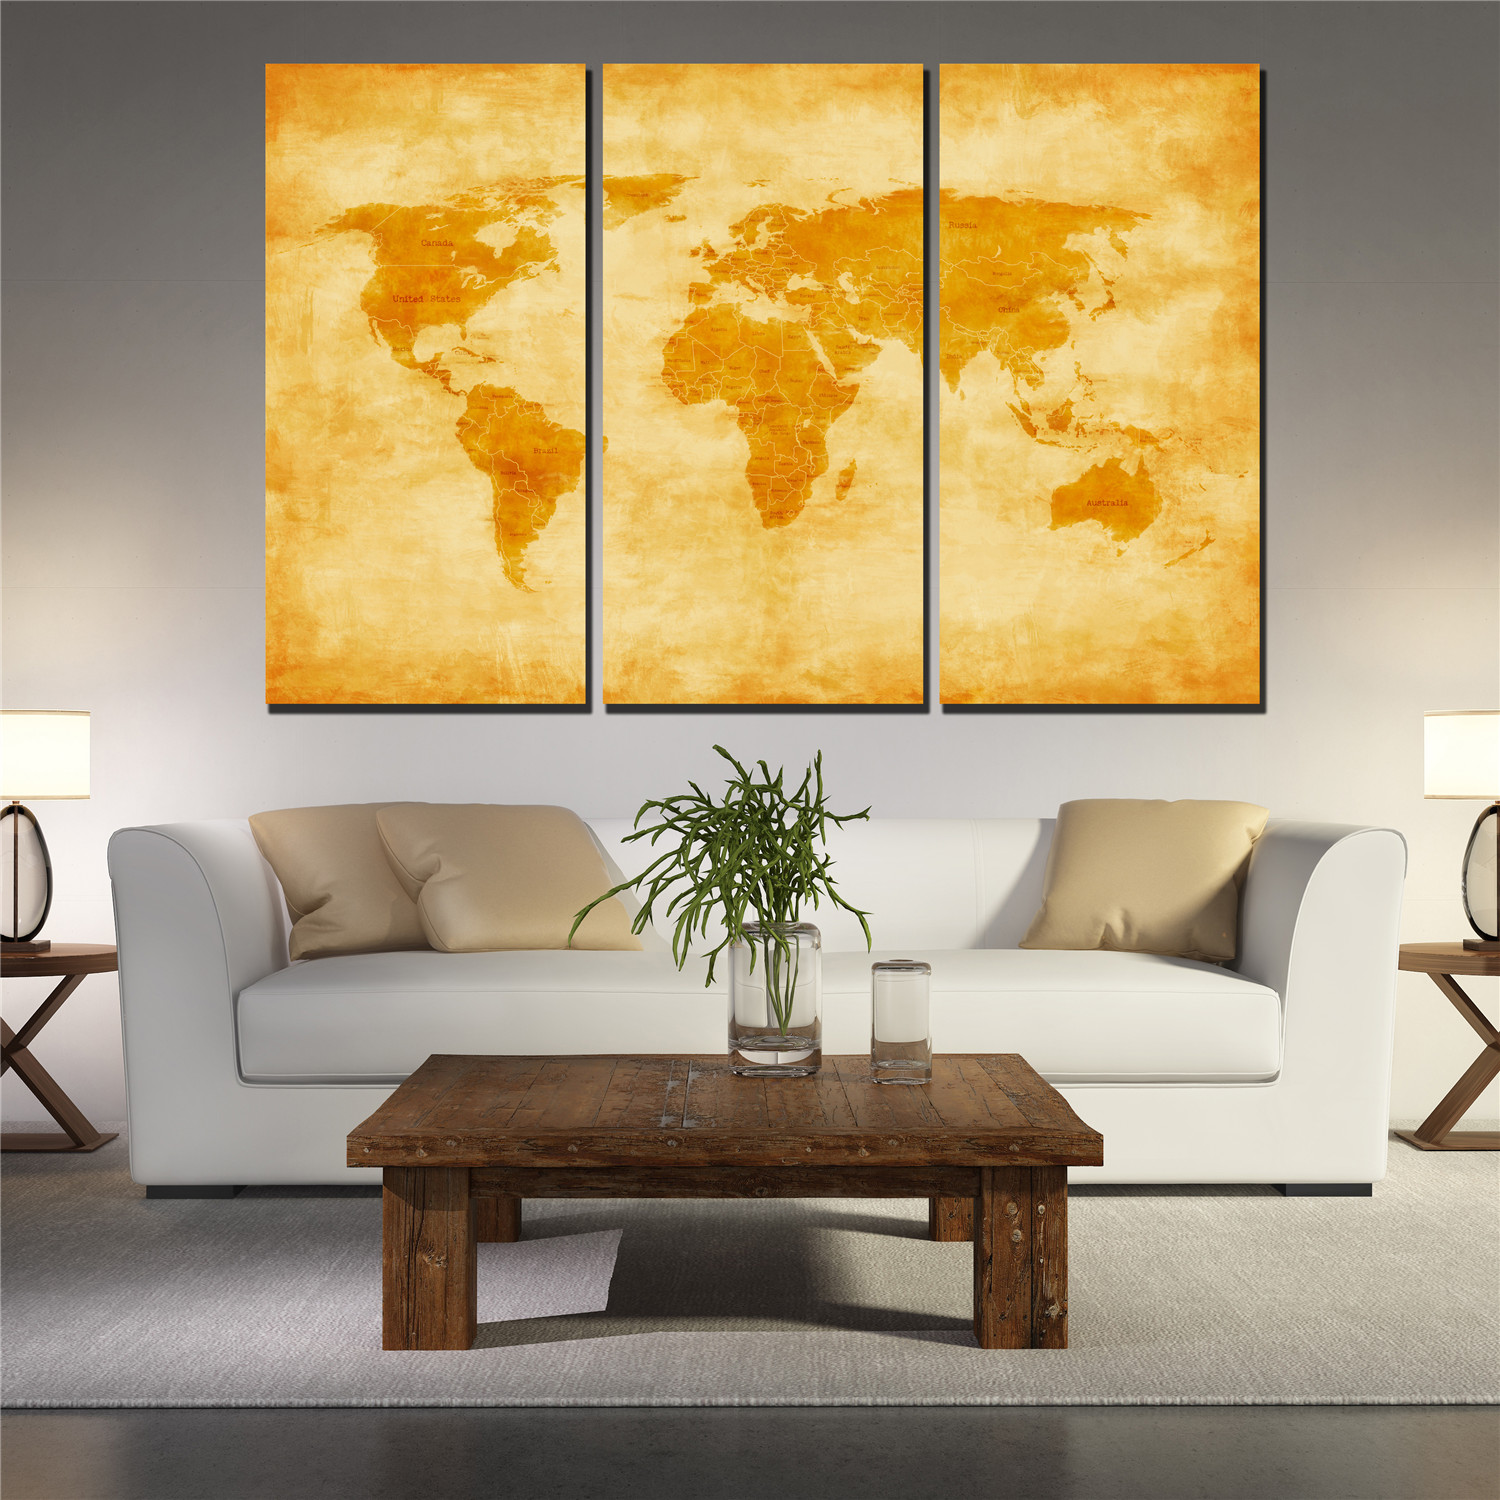 Golden Yellow World Map Poster Canvas Prints Wall Picture